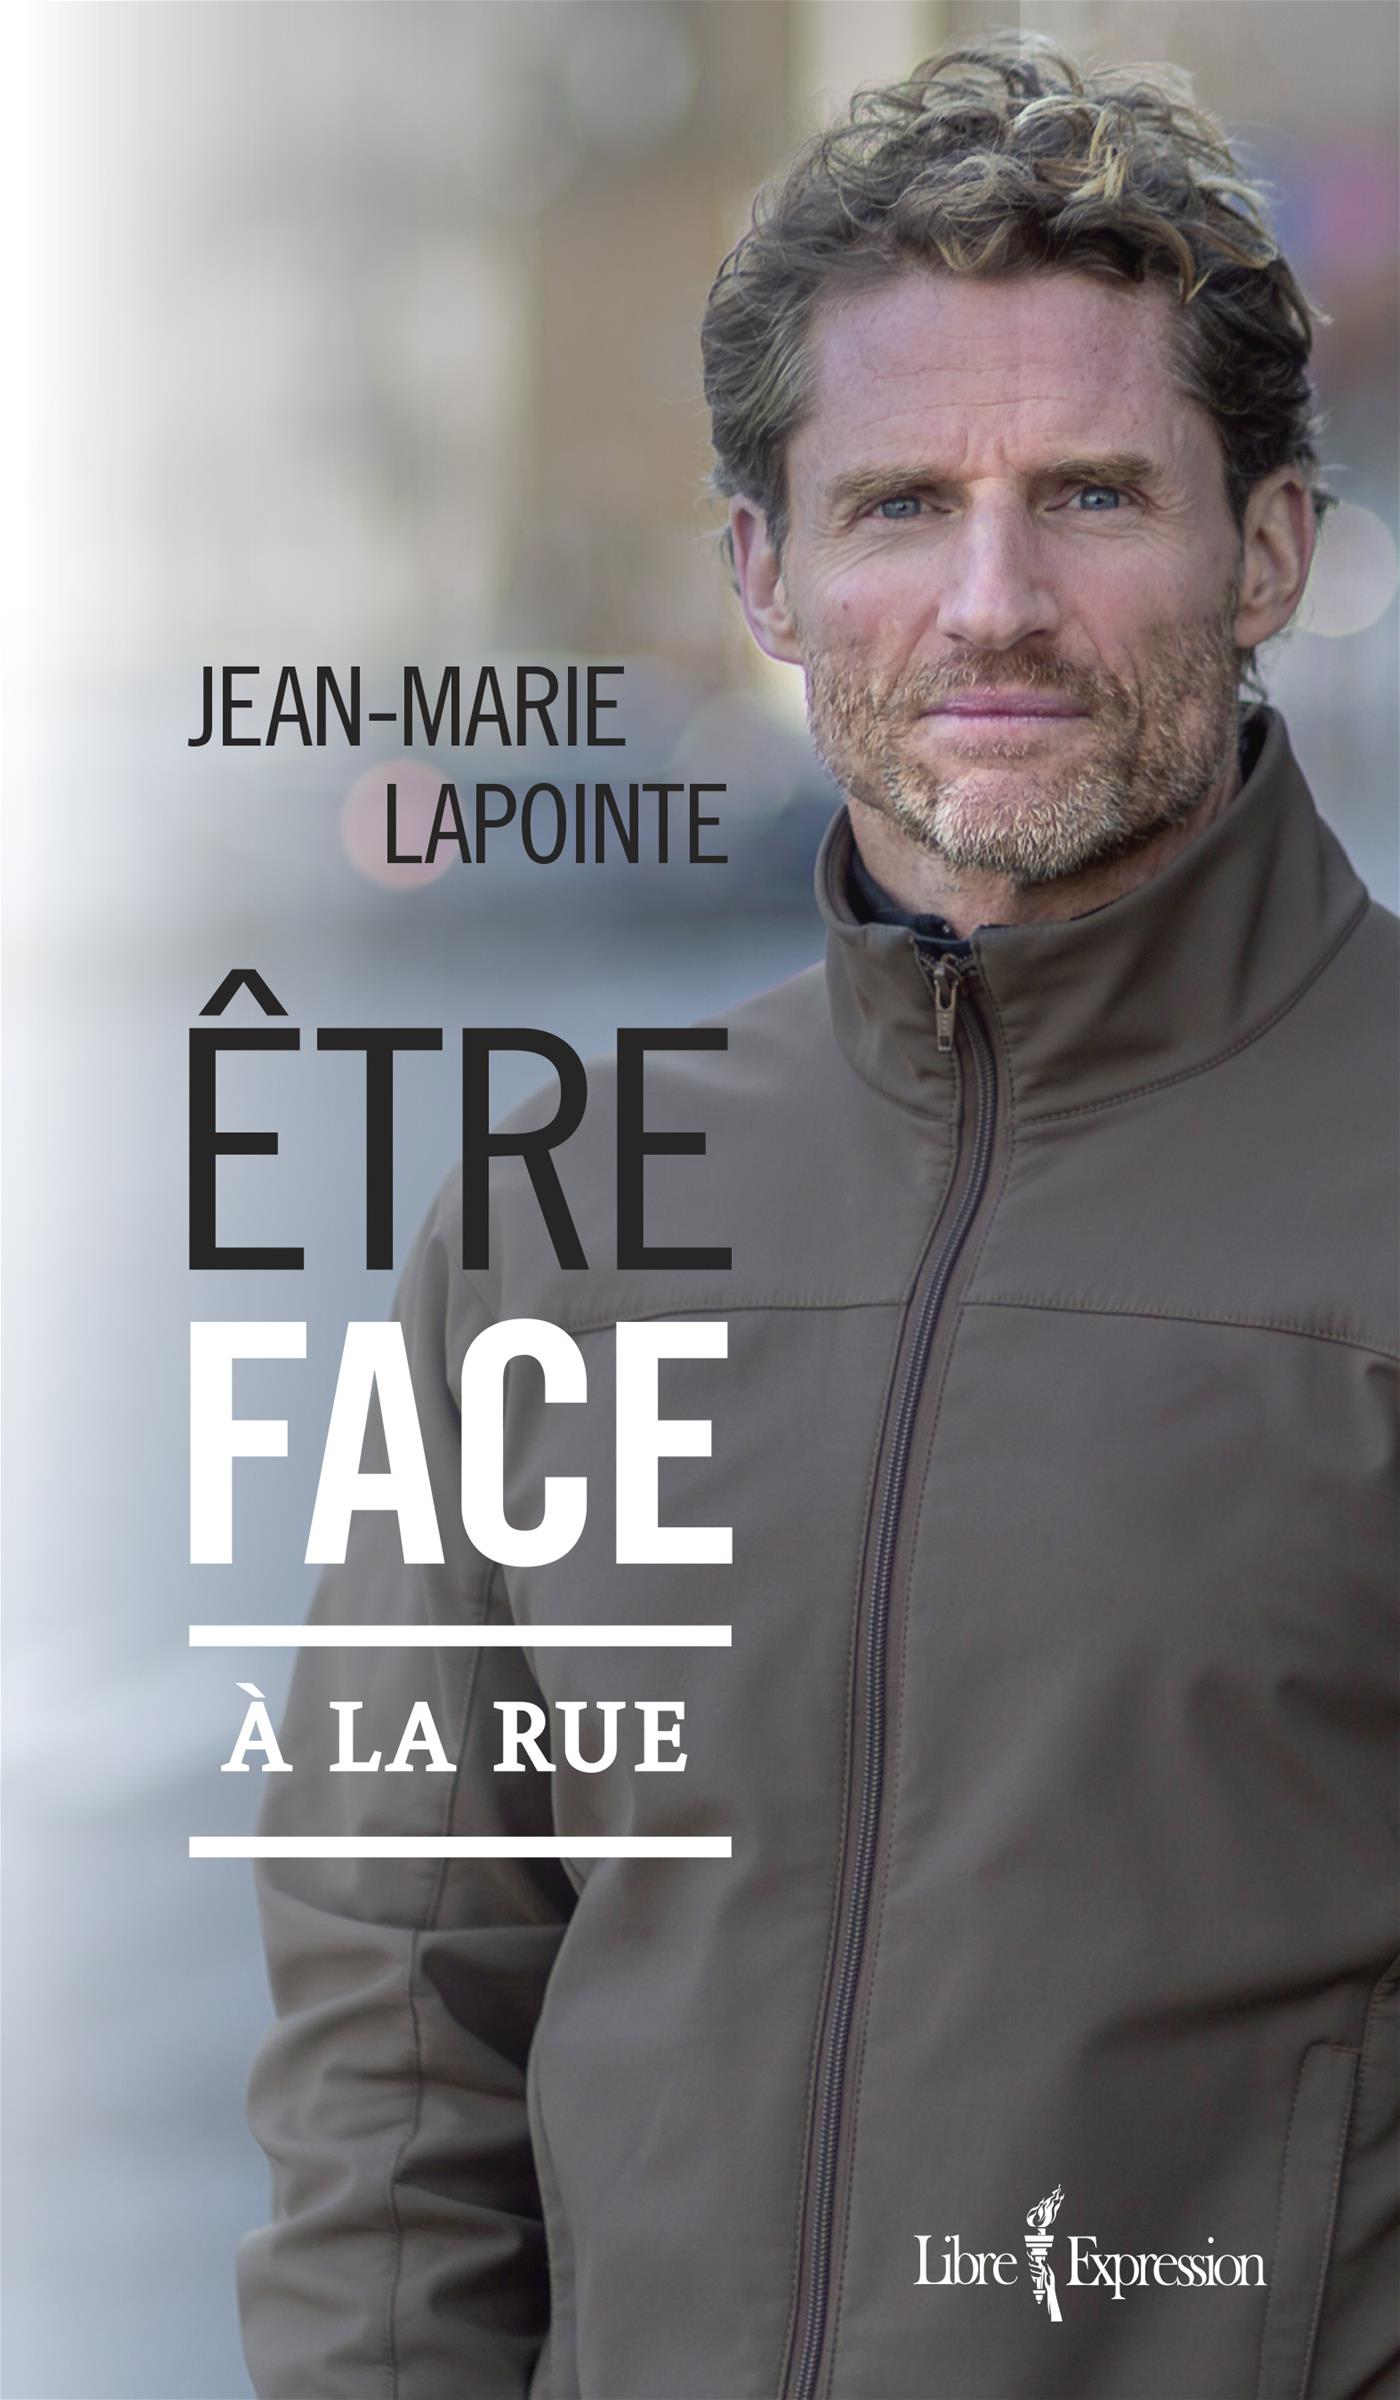 Être face à la rue